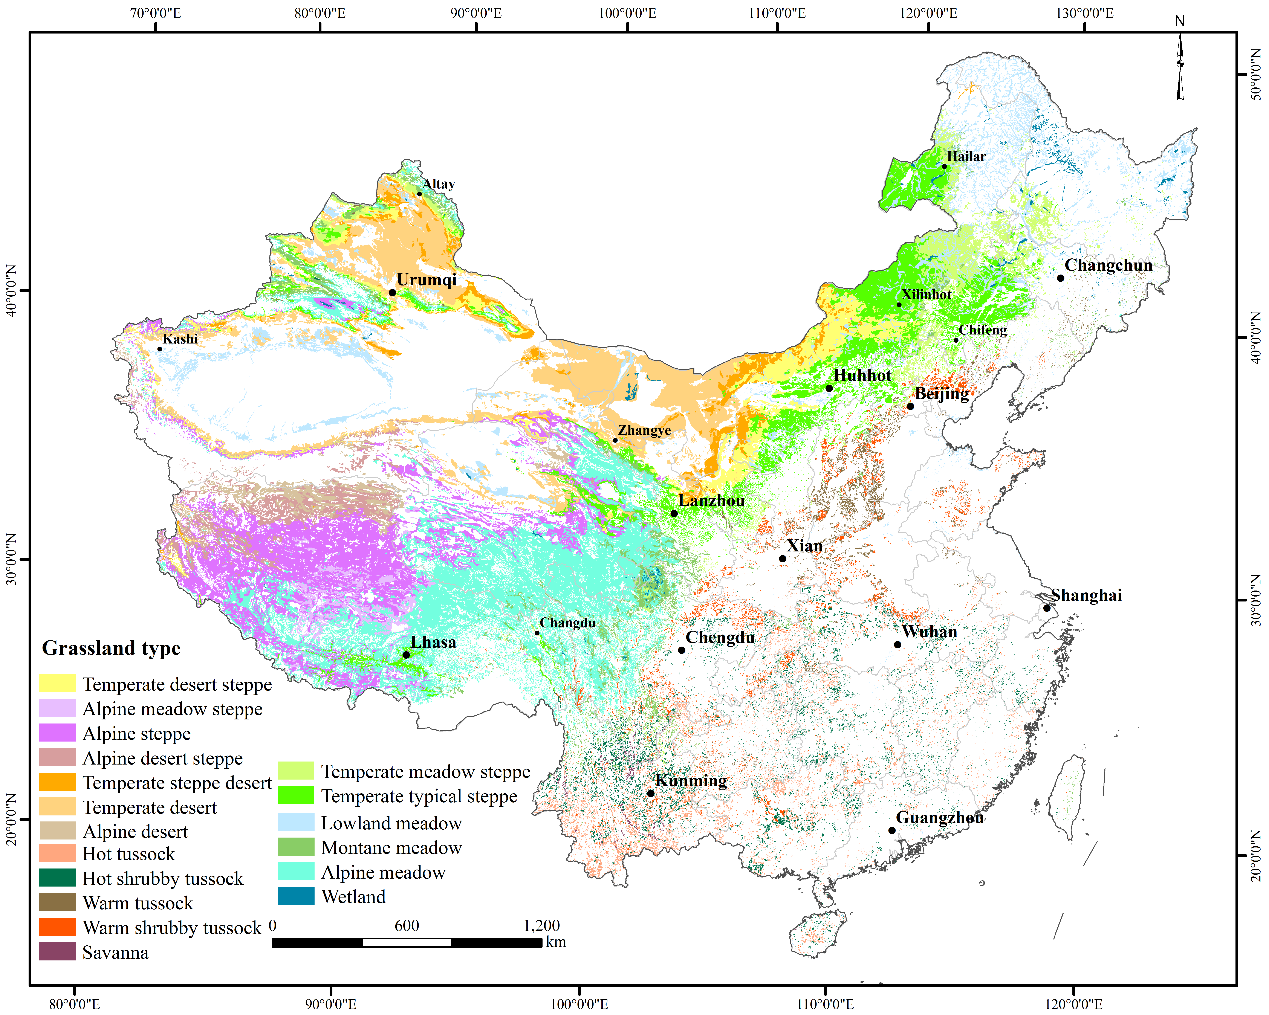 Map of China's grassland types (adapted from RRC)